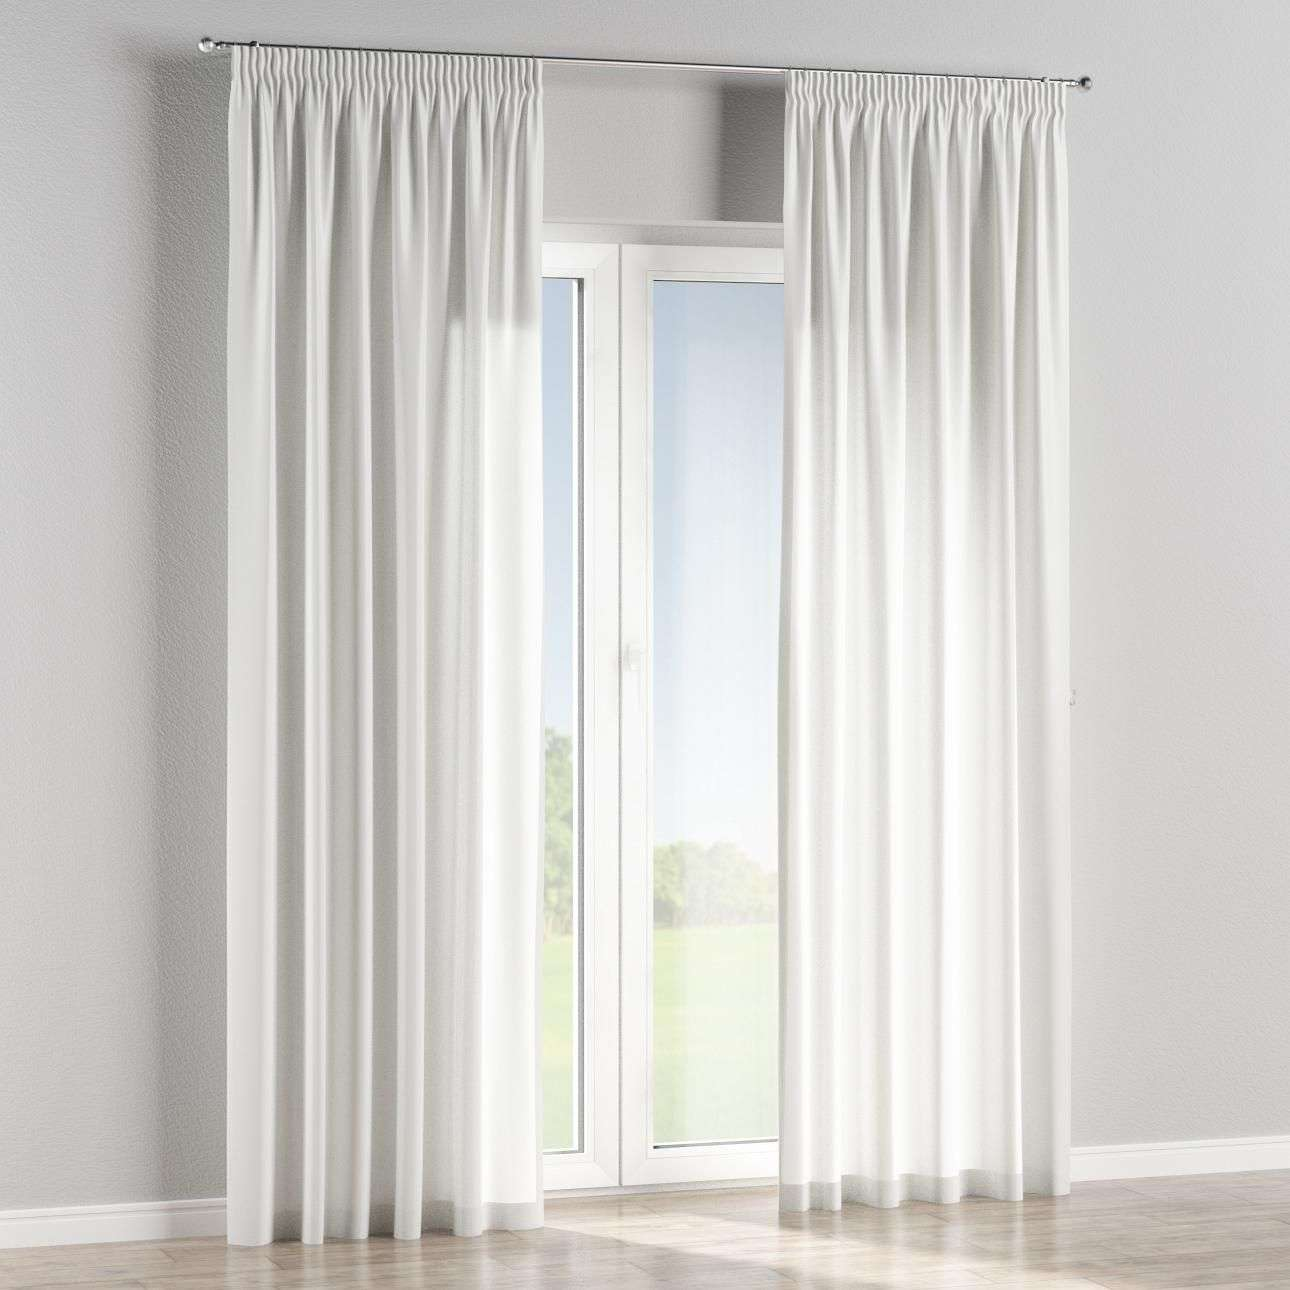 Pencil pleat lined curtains in collection Mirella, fabric: 143-06